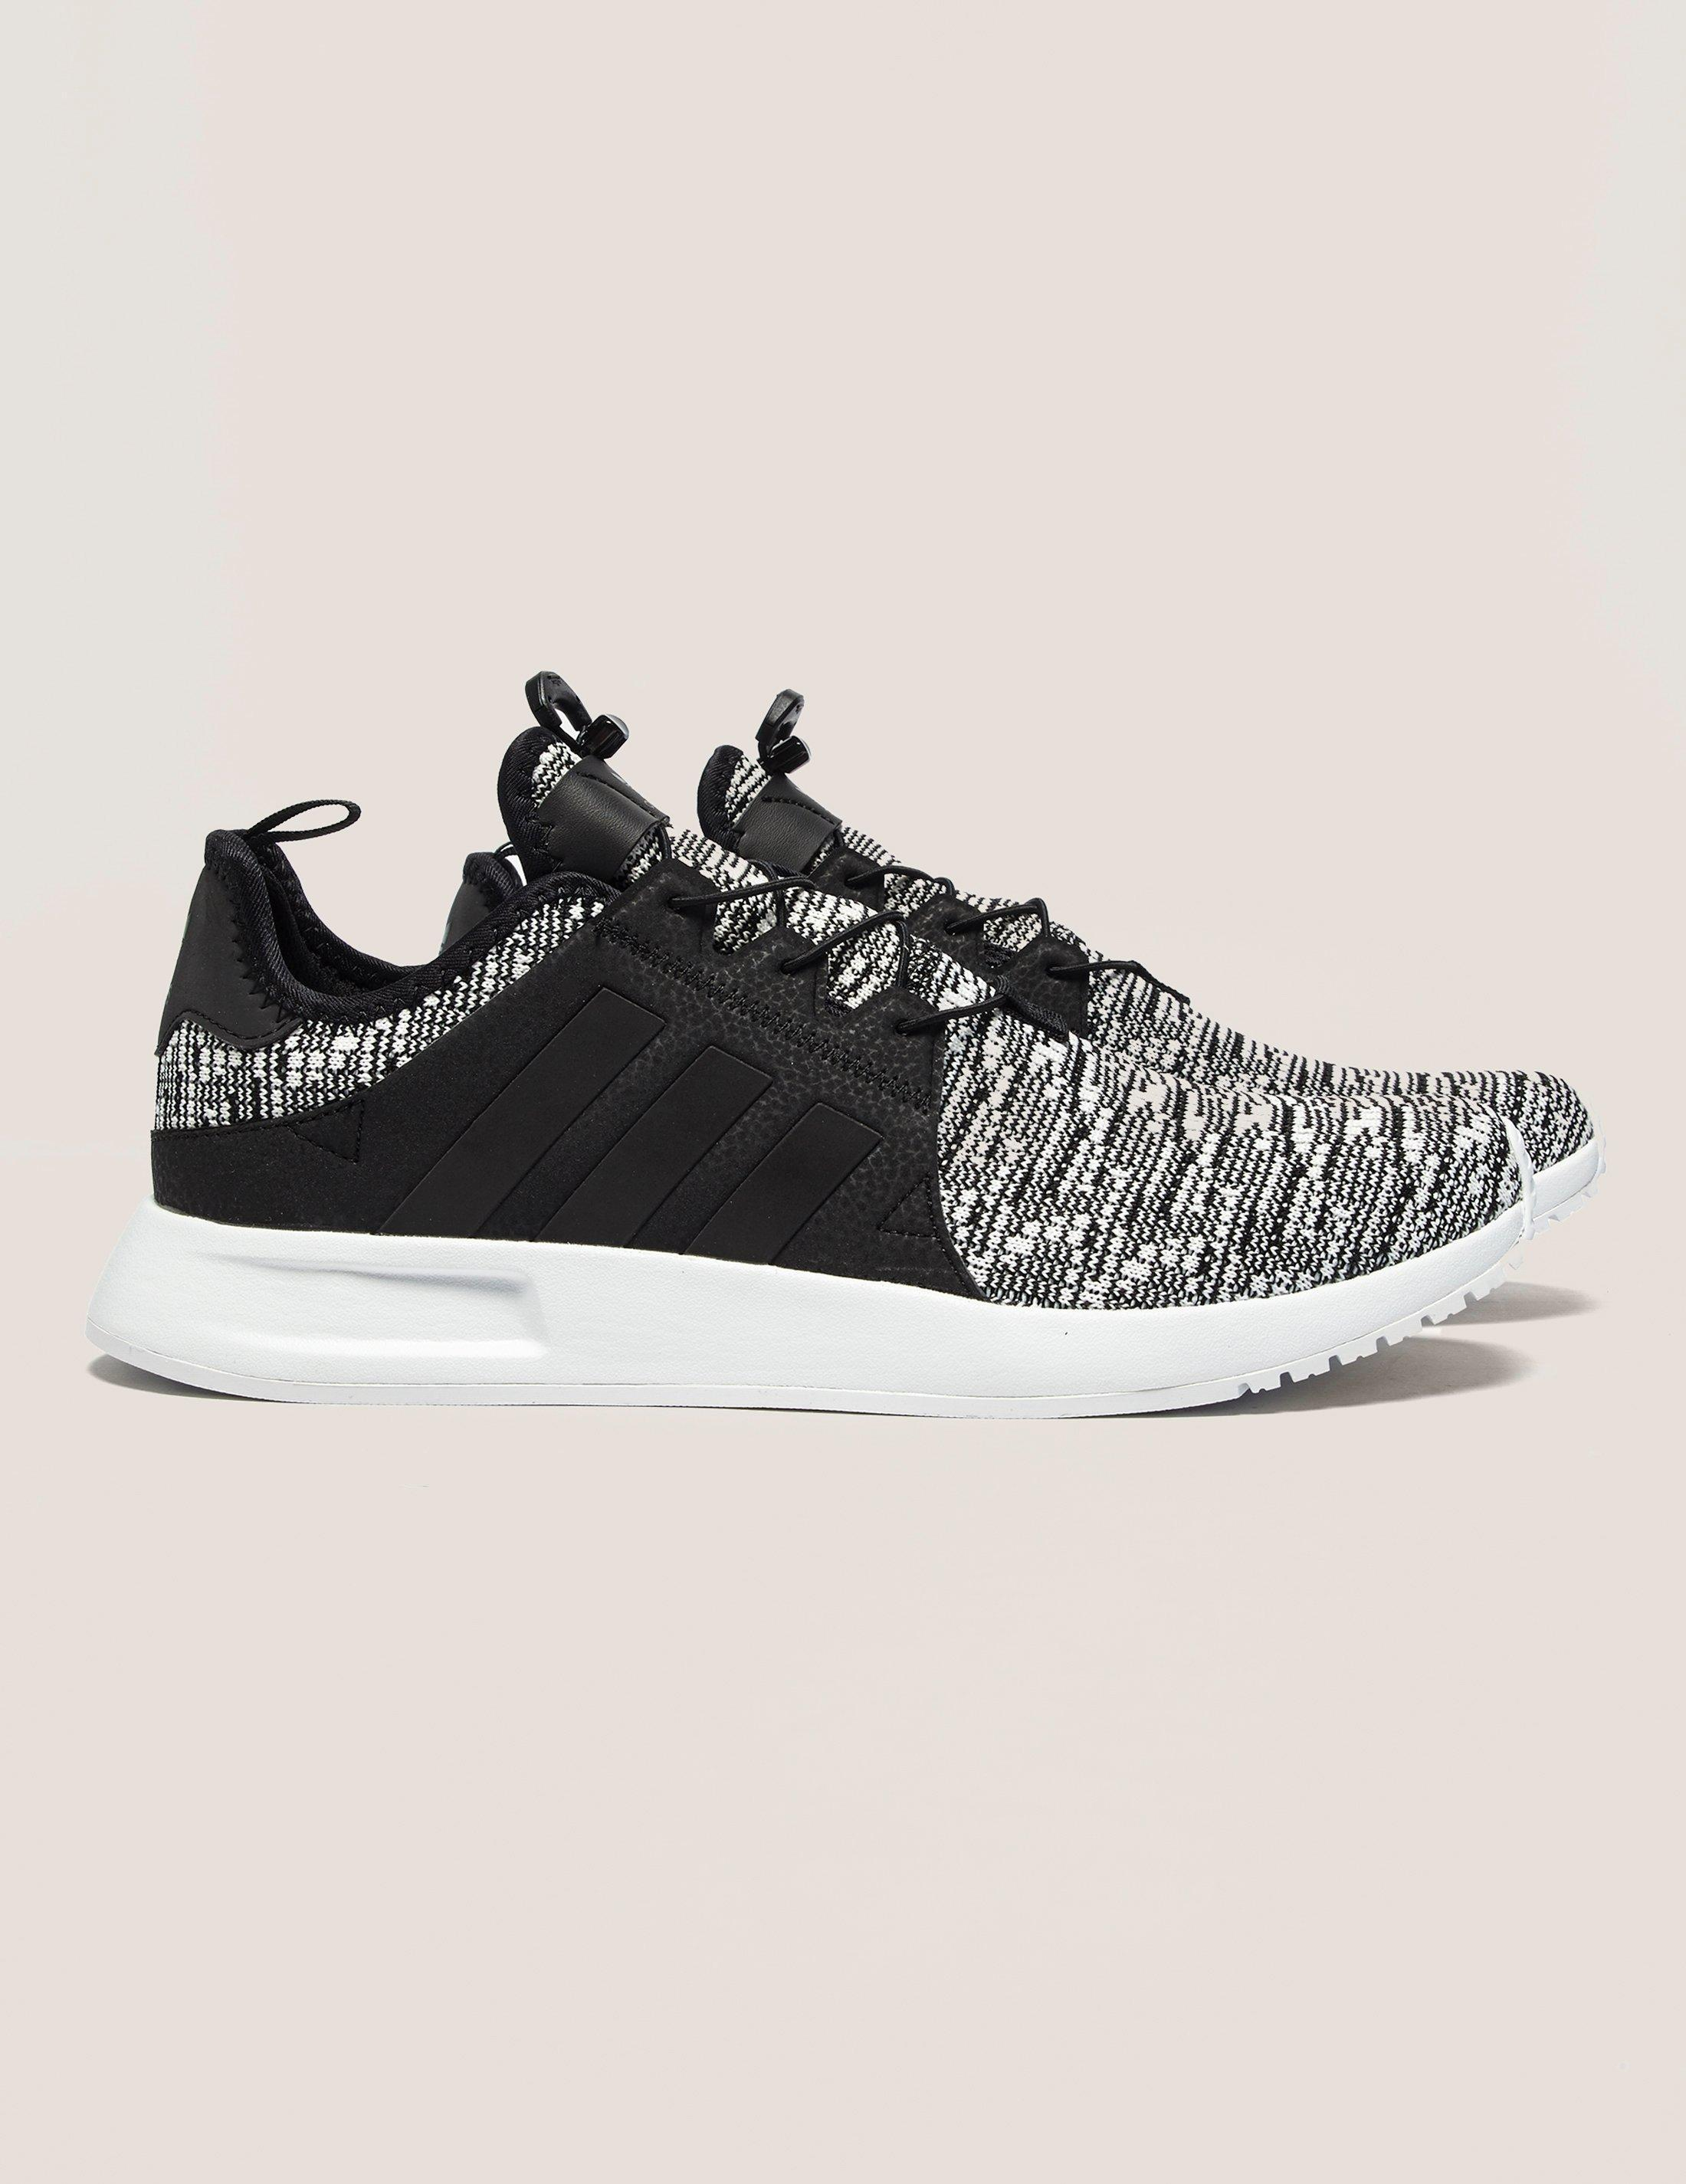 adidas Originals Leather Xplr Rk in BlackWhite (Black) for